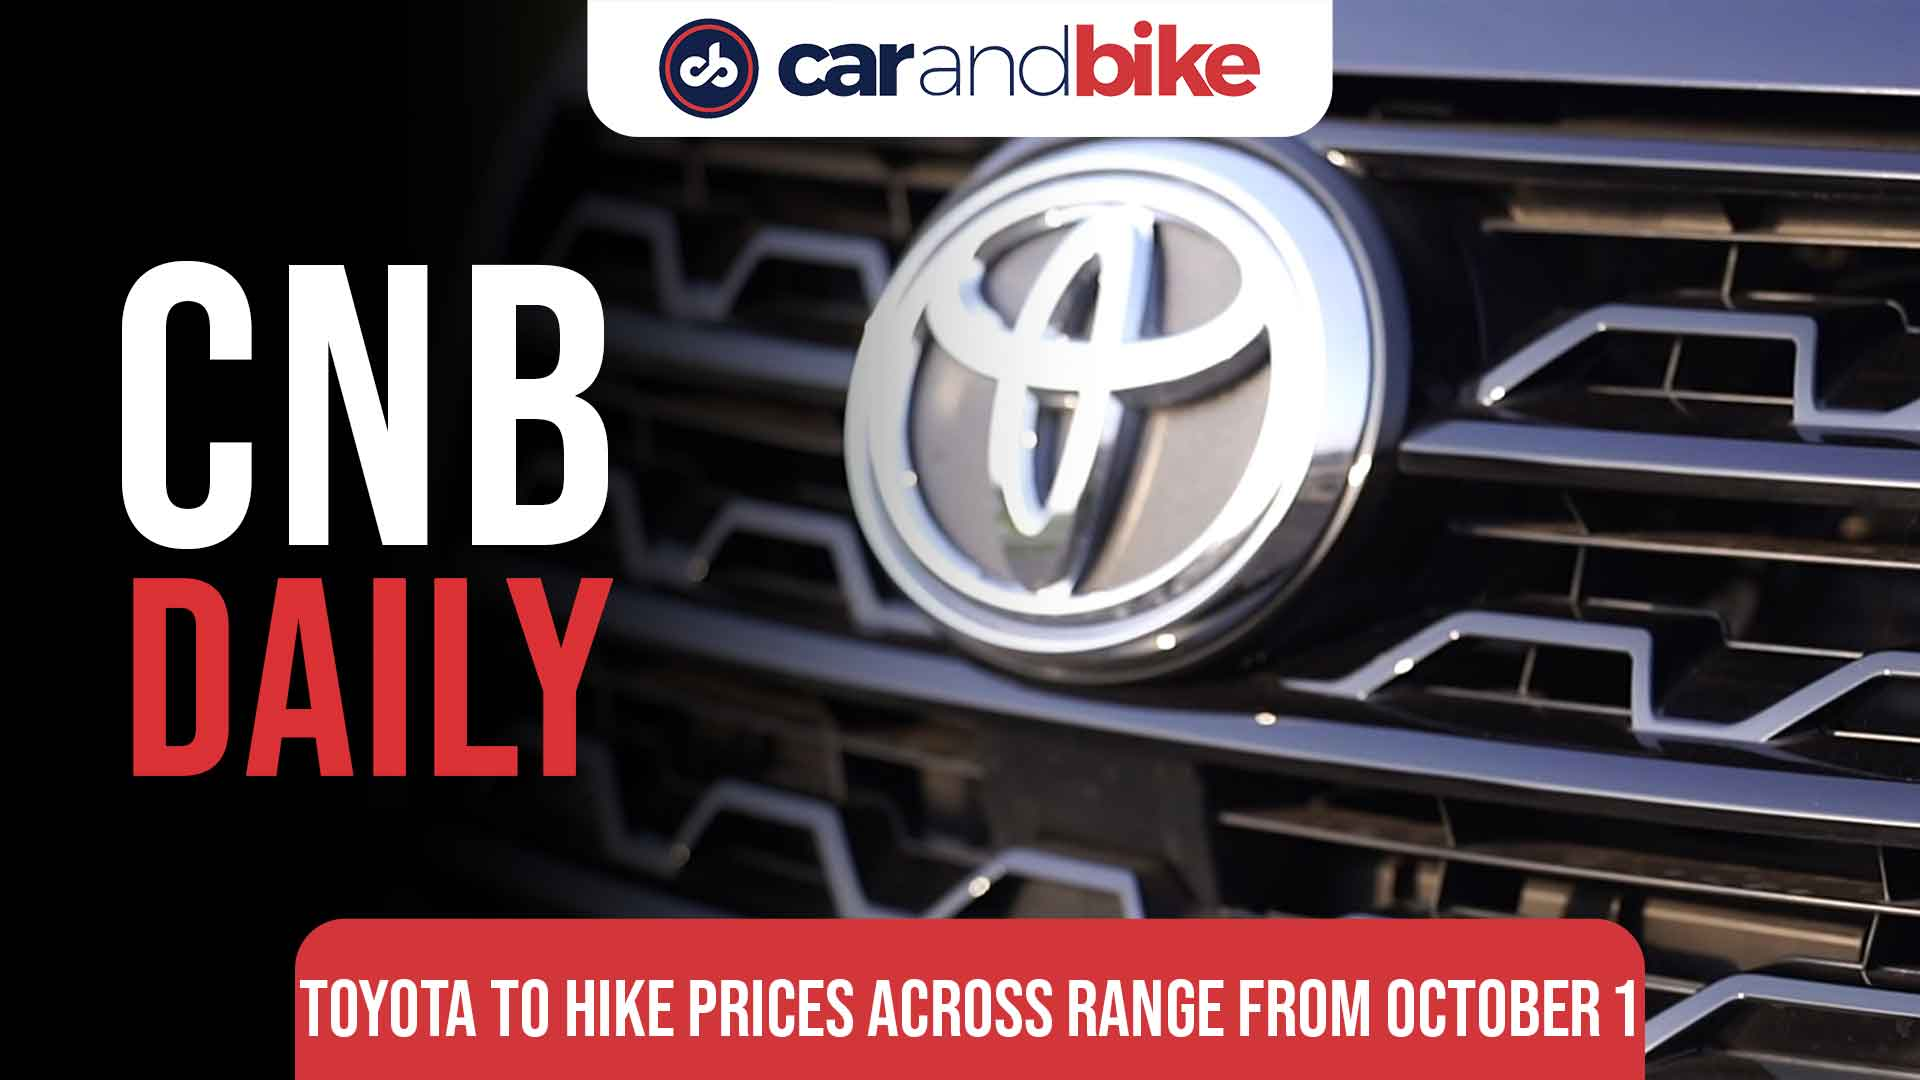 Toyota to hike prices across range from October 2021